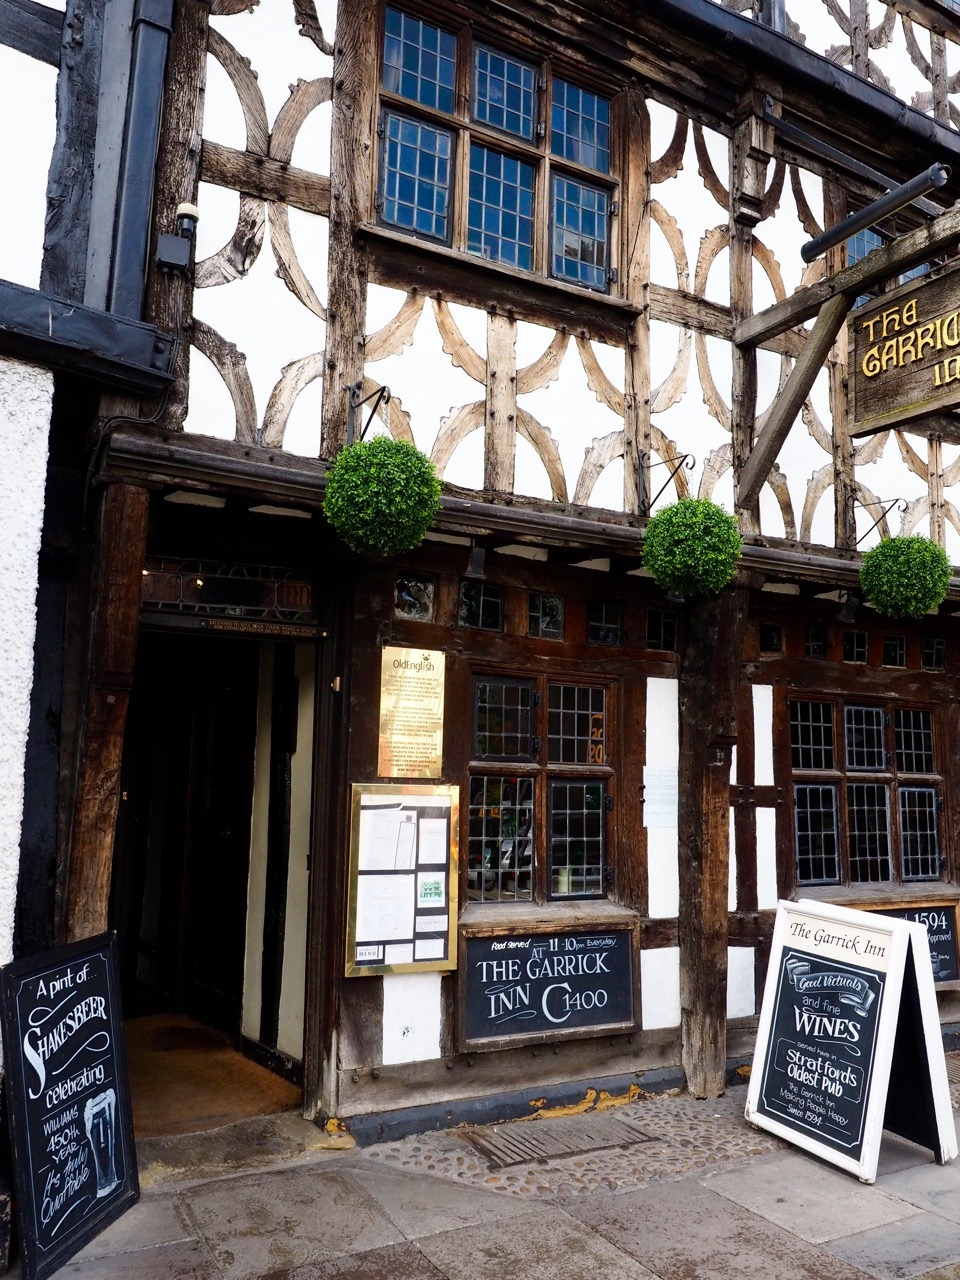 Shakespeare in England